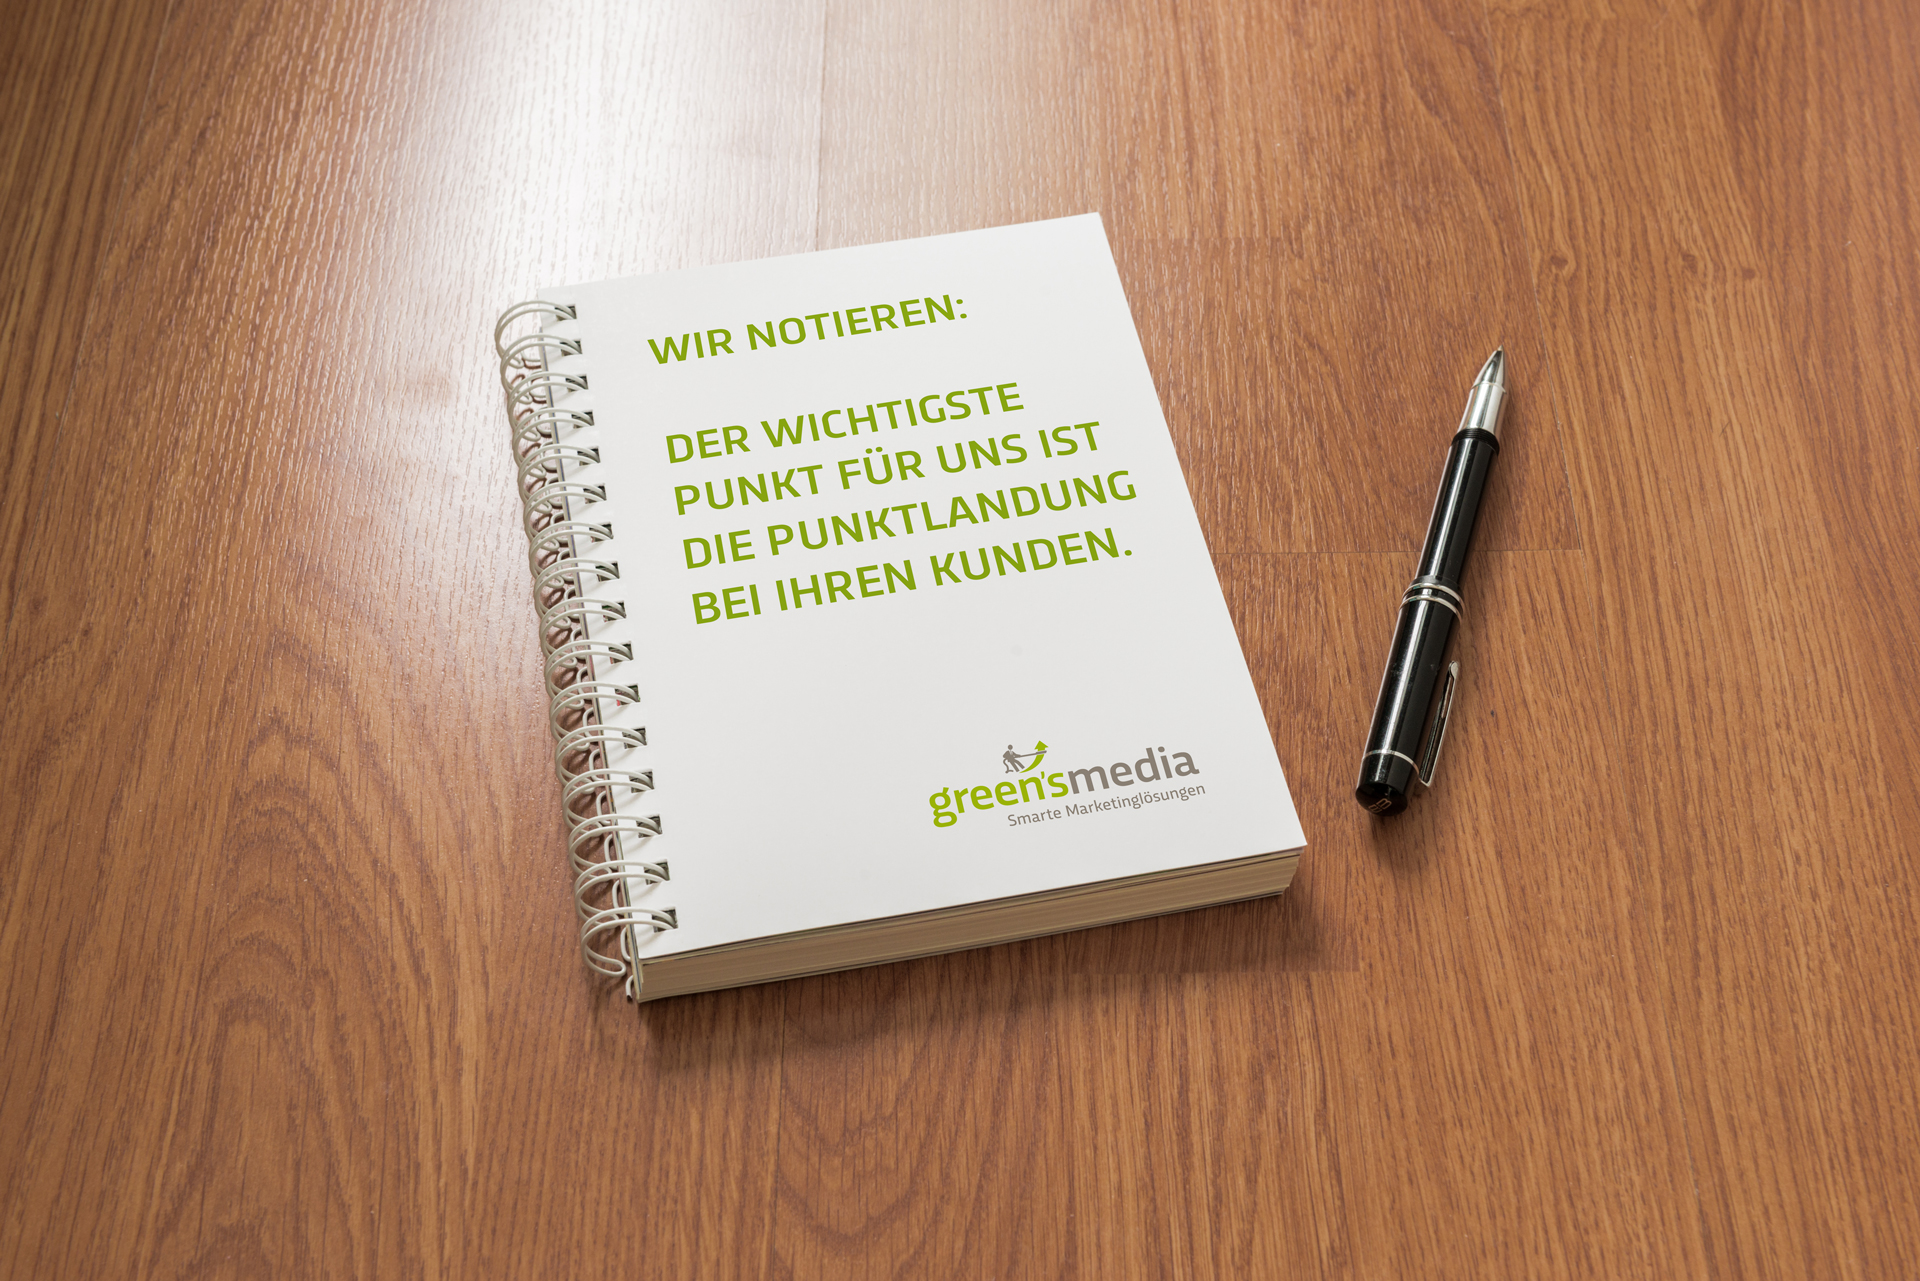 Corporate Design gestalten mit Greensmedia